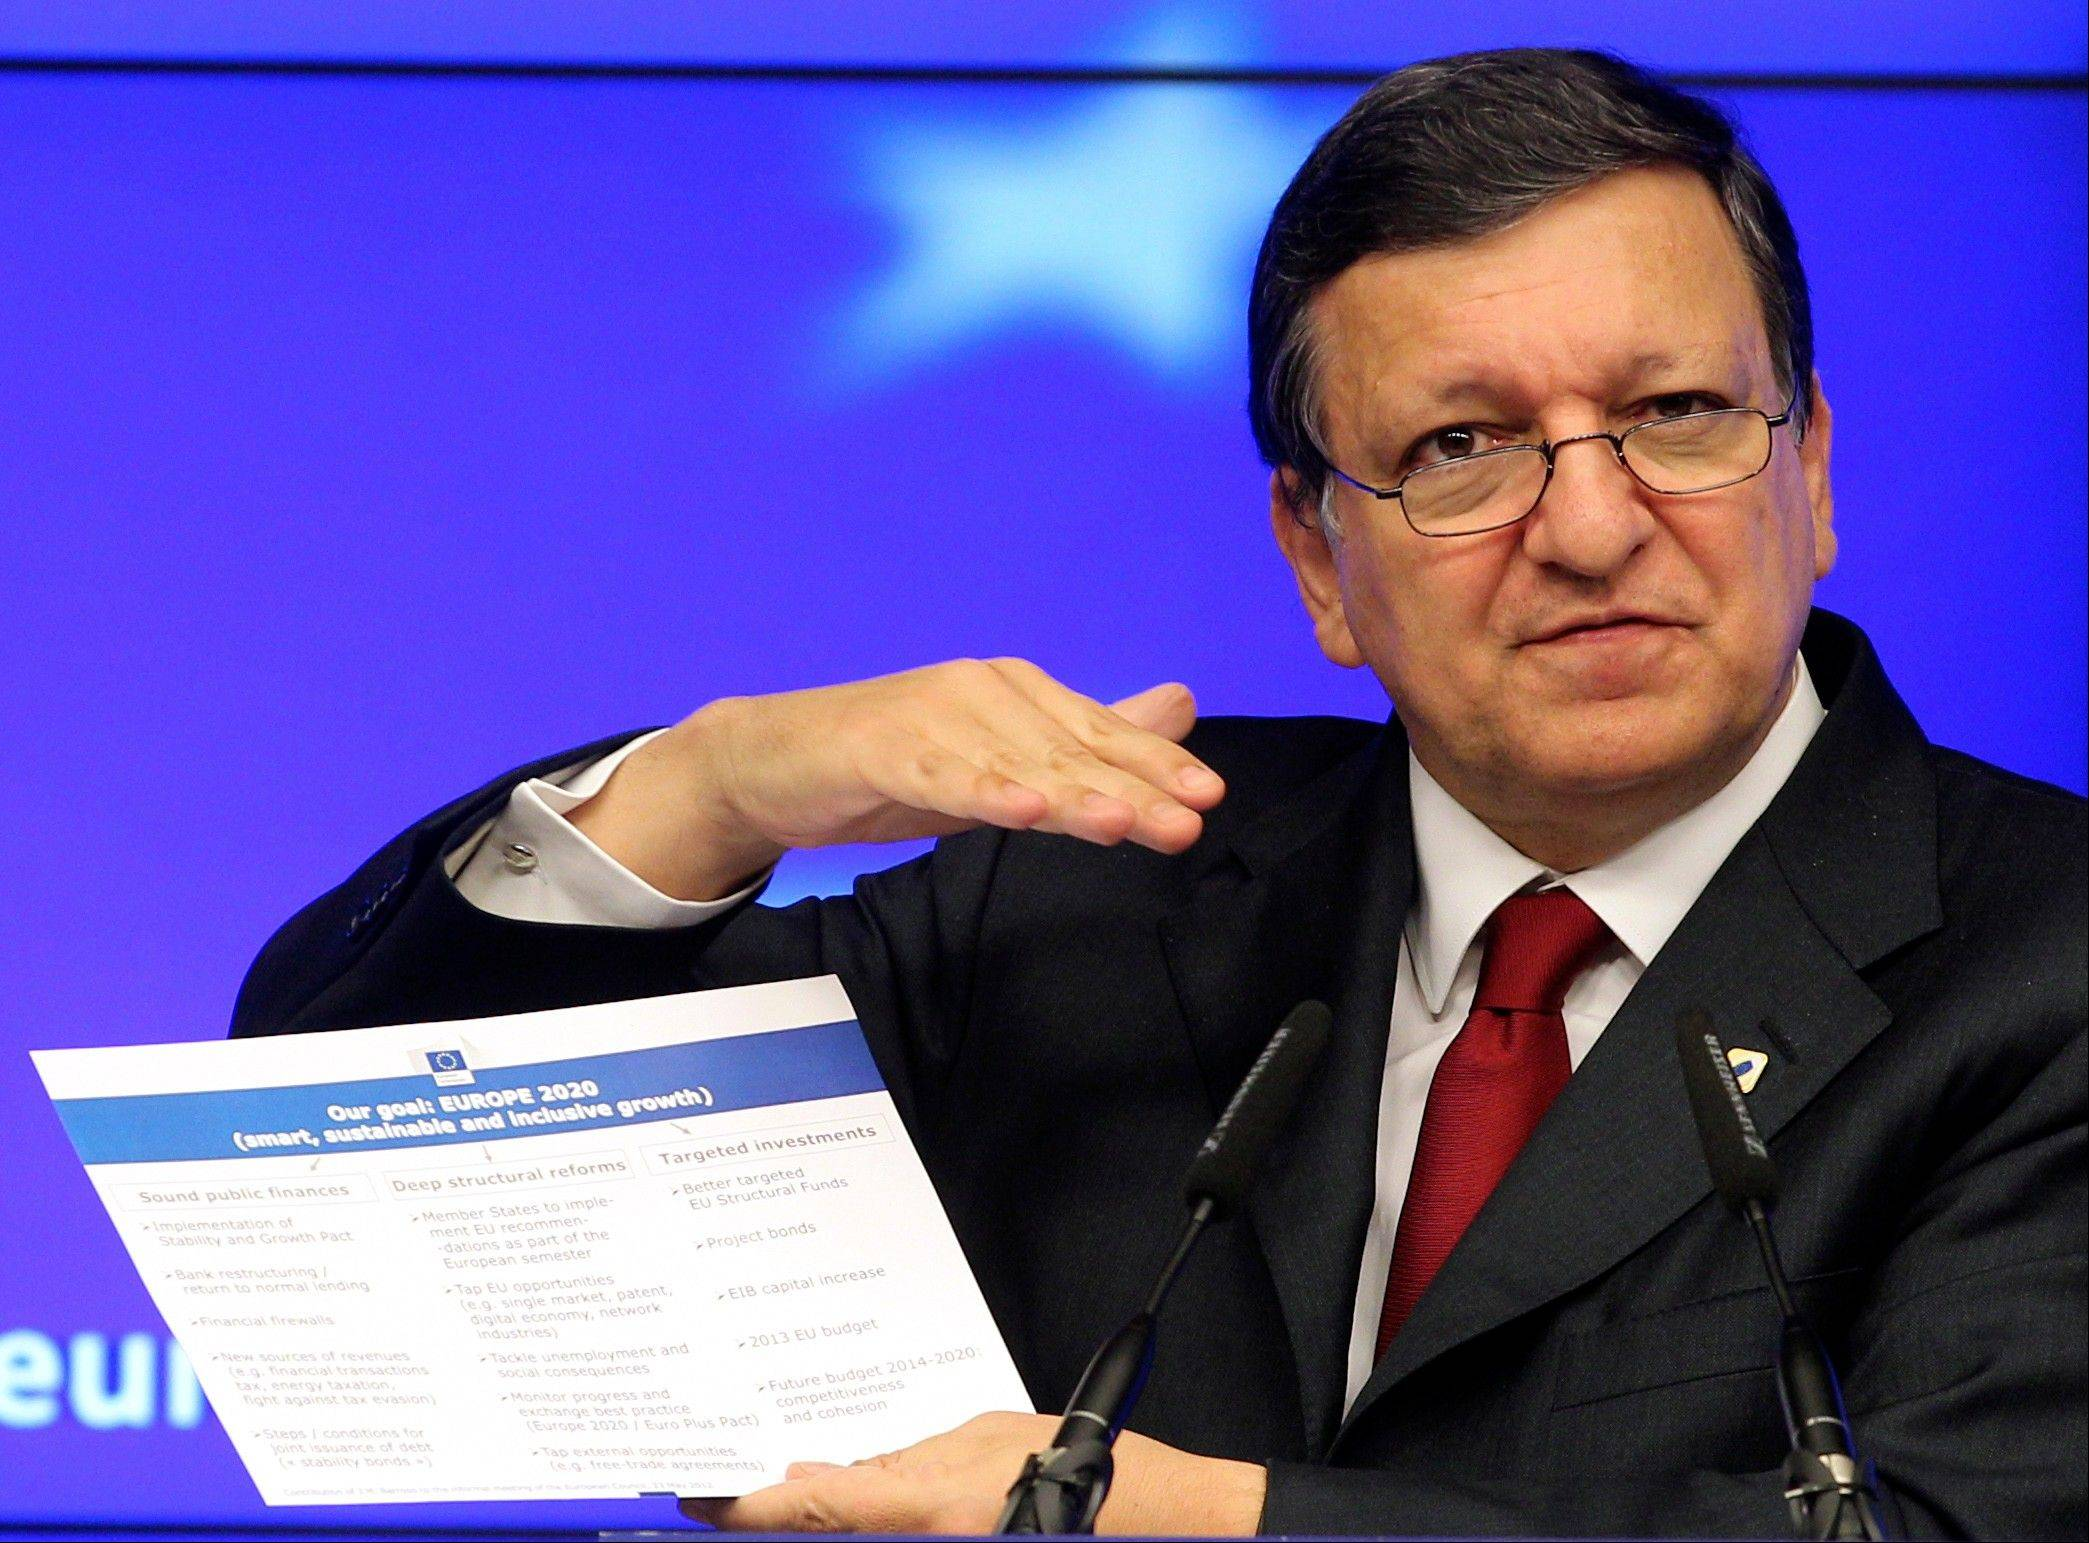 European Commission President Jose Manuel Barroso addresses the media at the end of an EU summit, at the European Council building in Brussels. The leaders of the 27 countries that make up the European Union met to try and find a way to keep the debt crisis in Europe from spiraling out of control and promote jobs and growth.